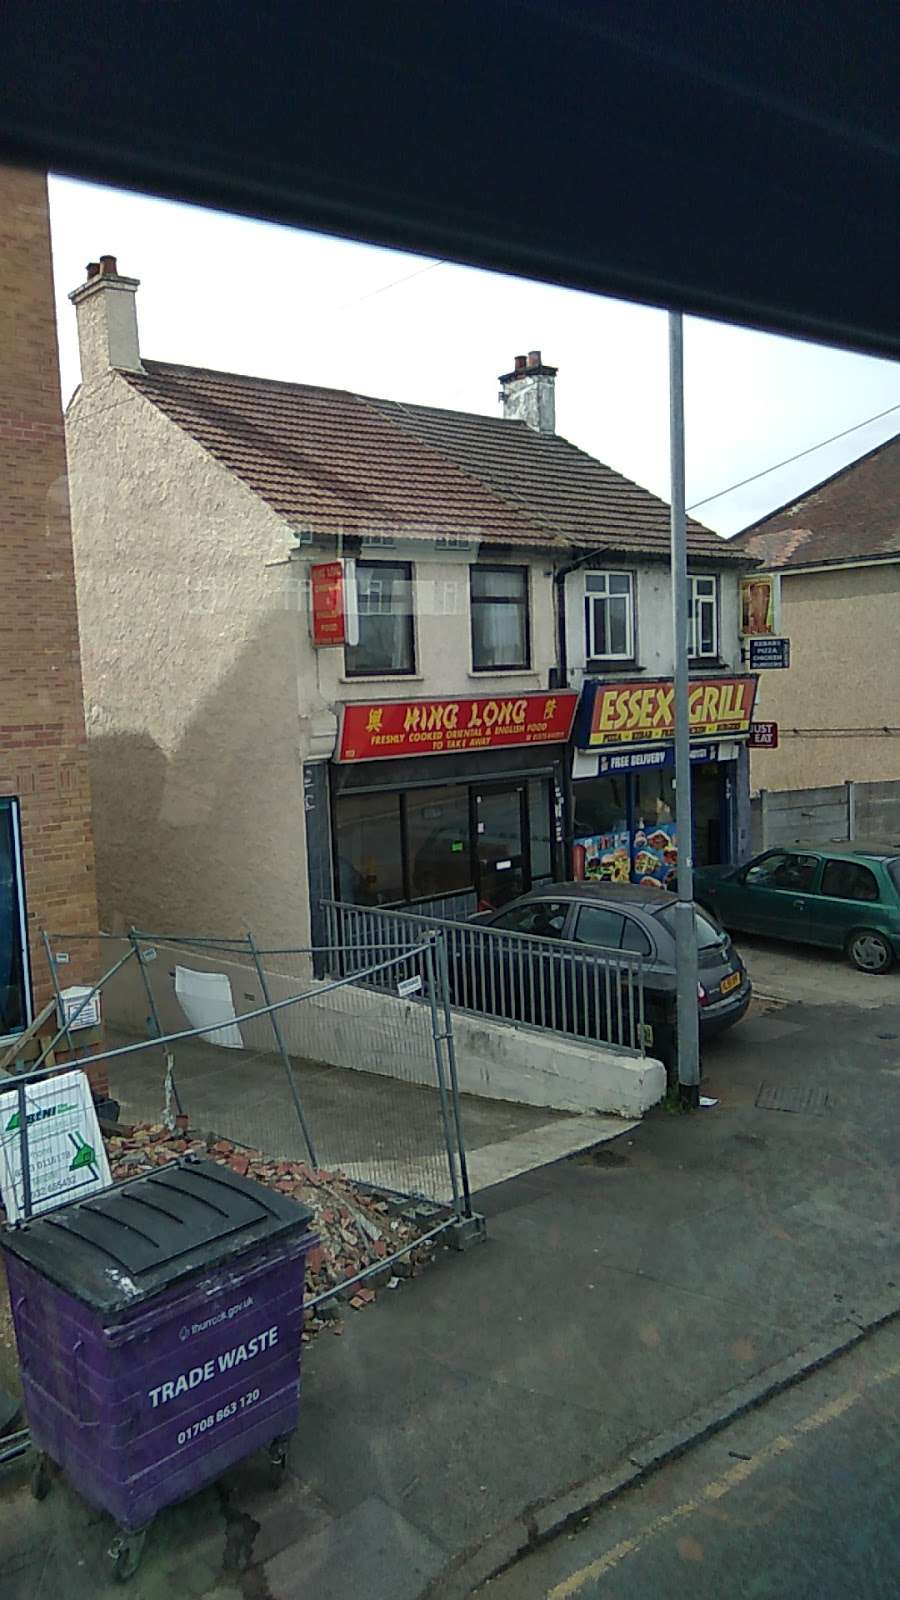 Hing Long - meal takeaway  | Photo 1 of 6 | Address: 113 River View, Thurrock, Grays RM16 4BA, UK | Phone: 01375 840911